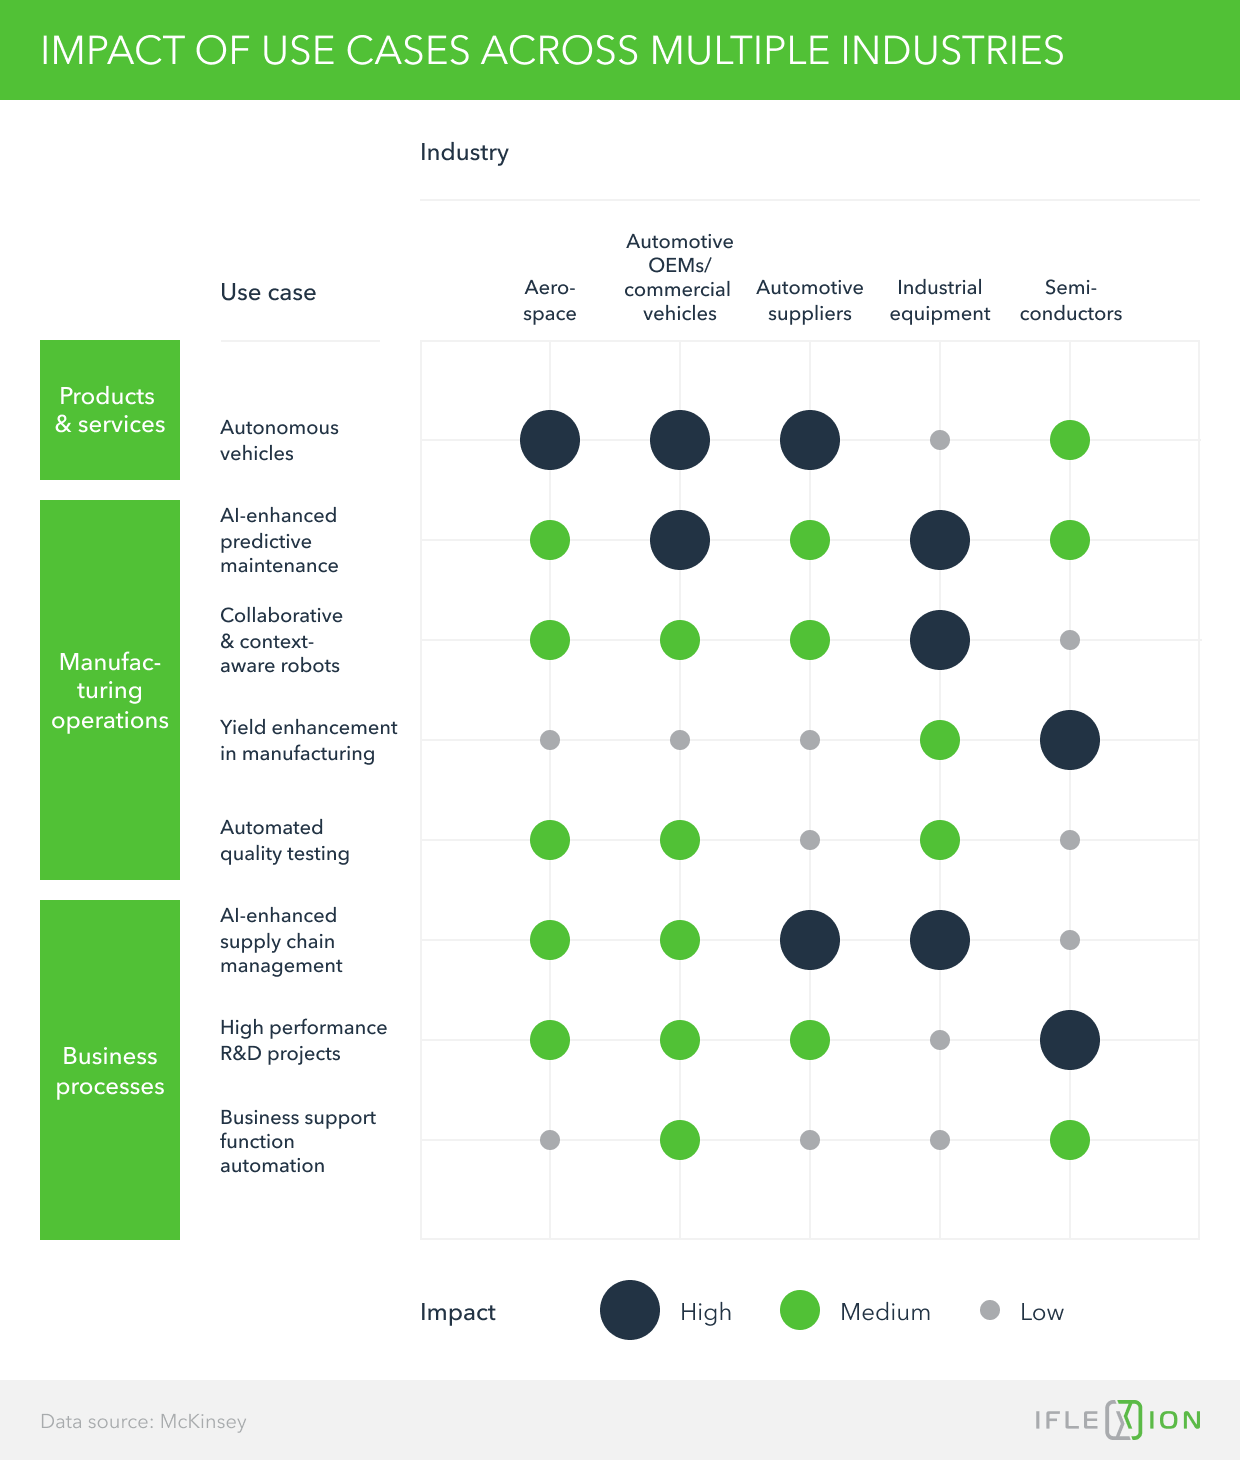 Impact of Use Cases Across Multiple Industries